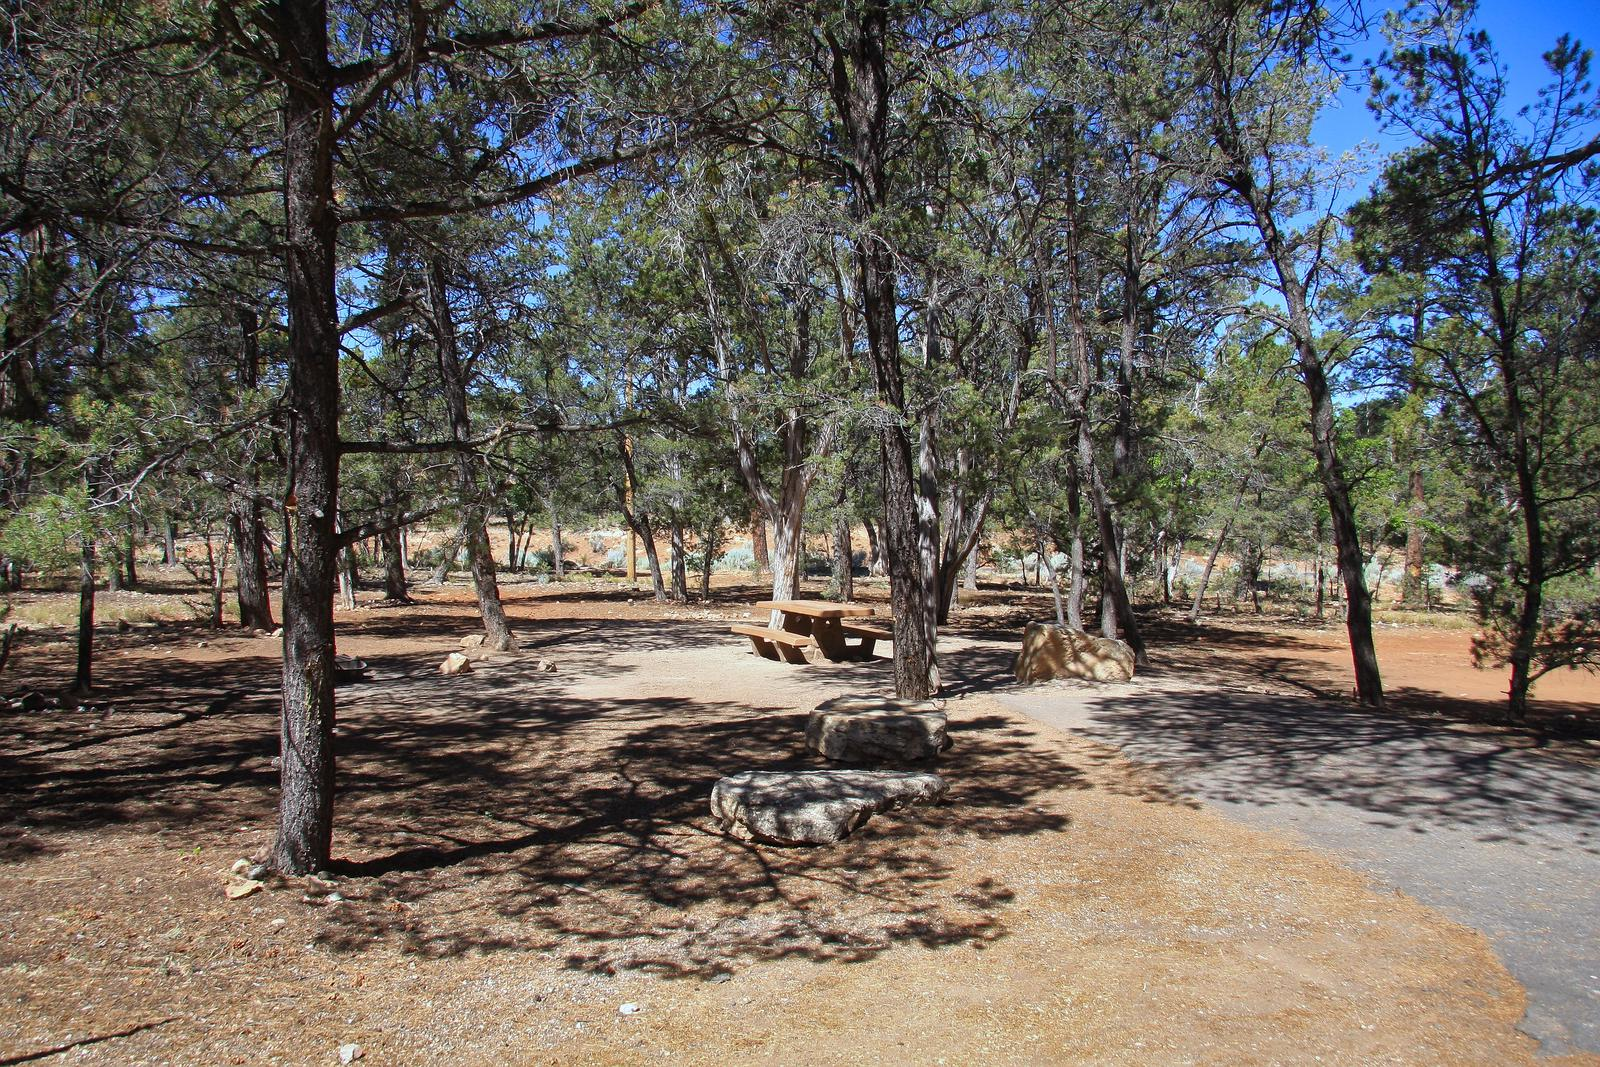 Picnic table, fire pit, and parking spot, Mather CampgroundThe picnic table, fire pit, and parking spot for Aspen Loop 42, Mather Campground